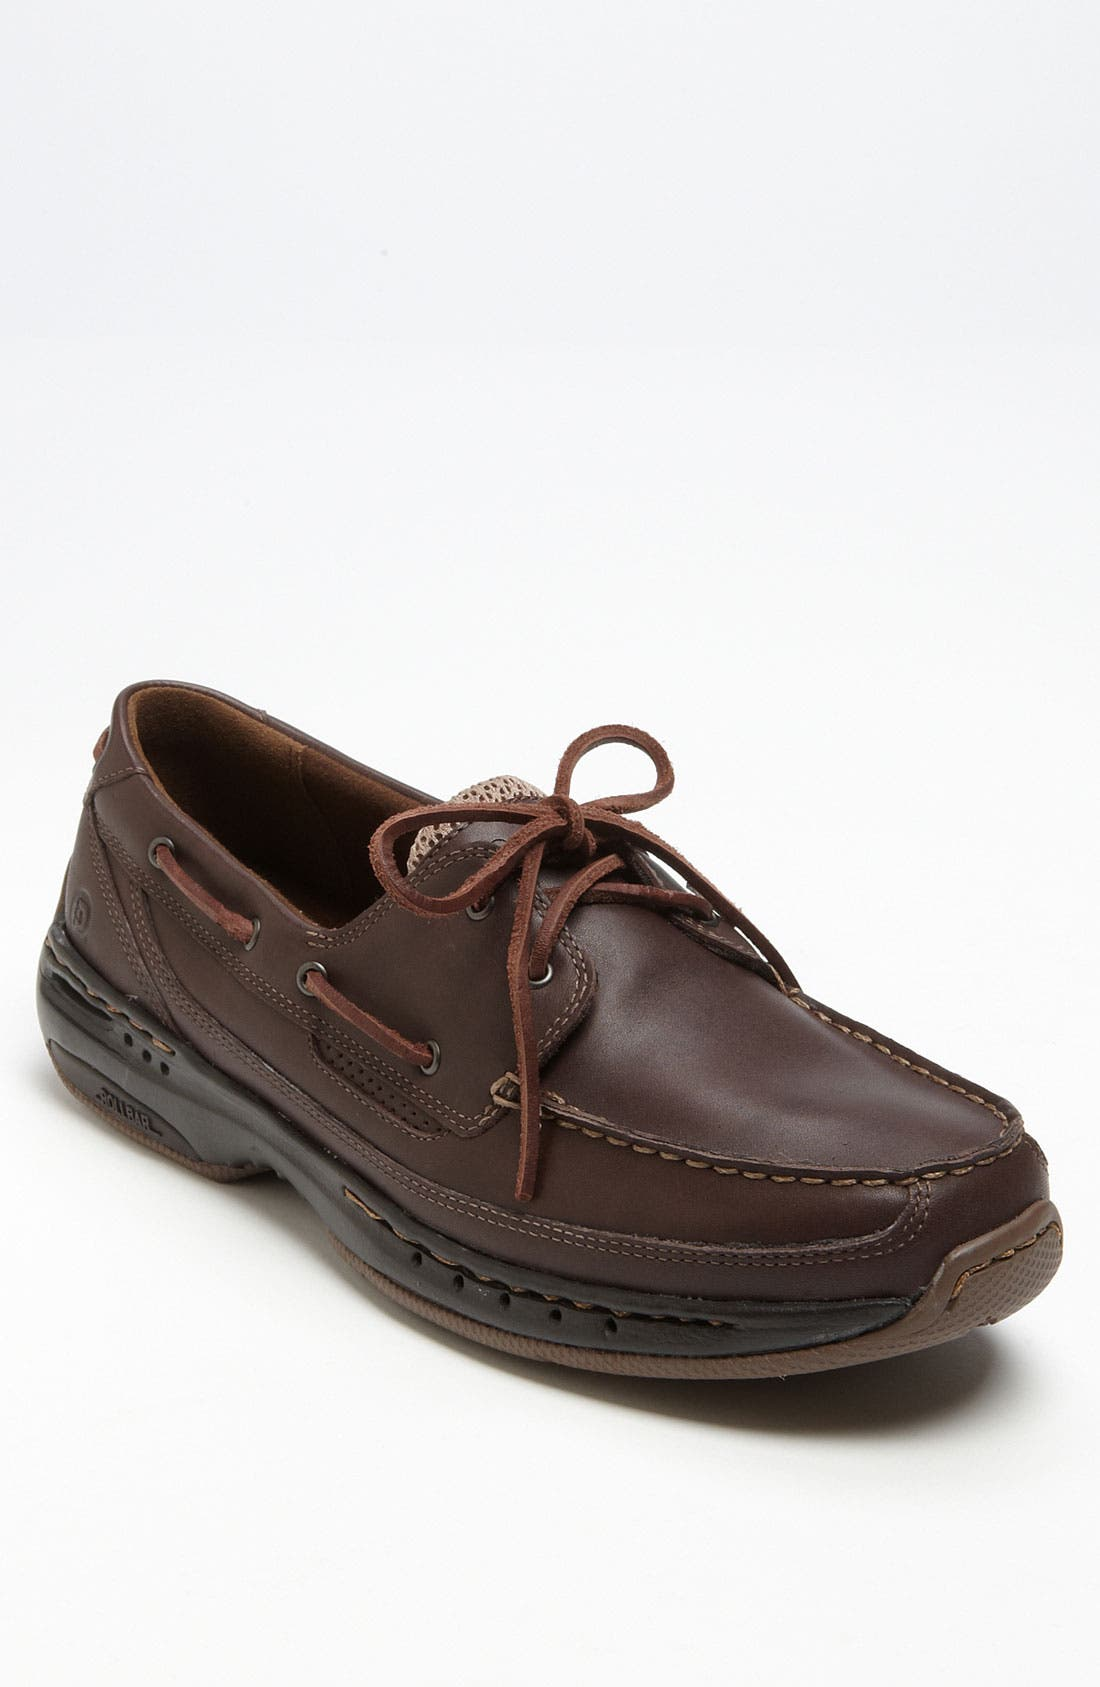 DUNHAM, 'Shoreline' Boat Shoe, Main thumbnail 1, color, BROWN LEATHER